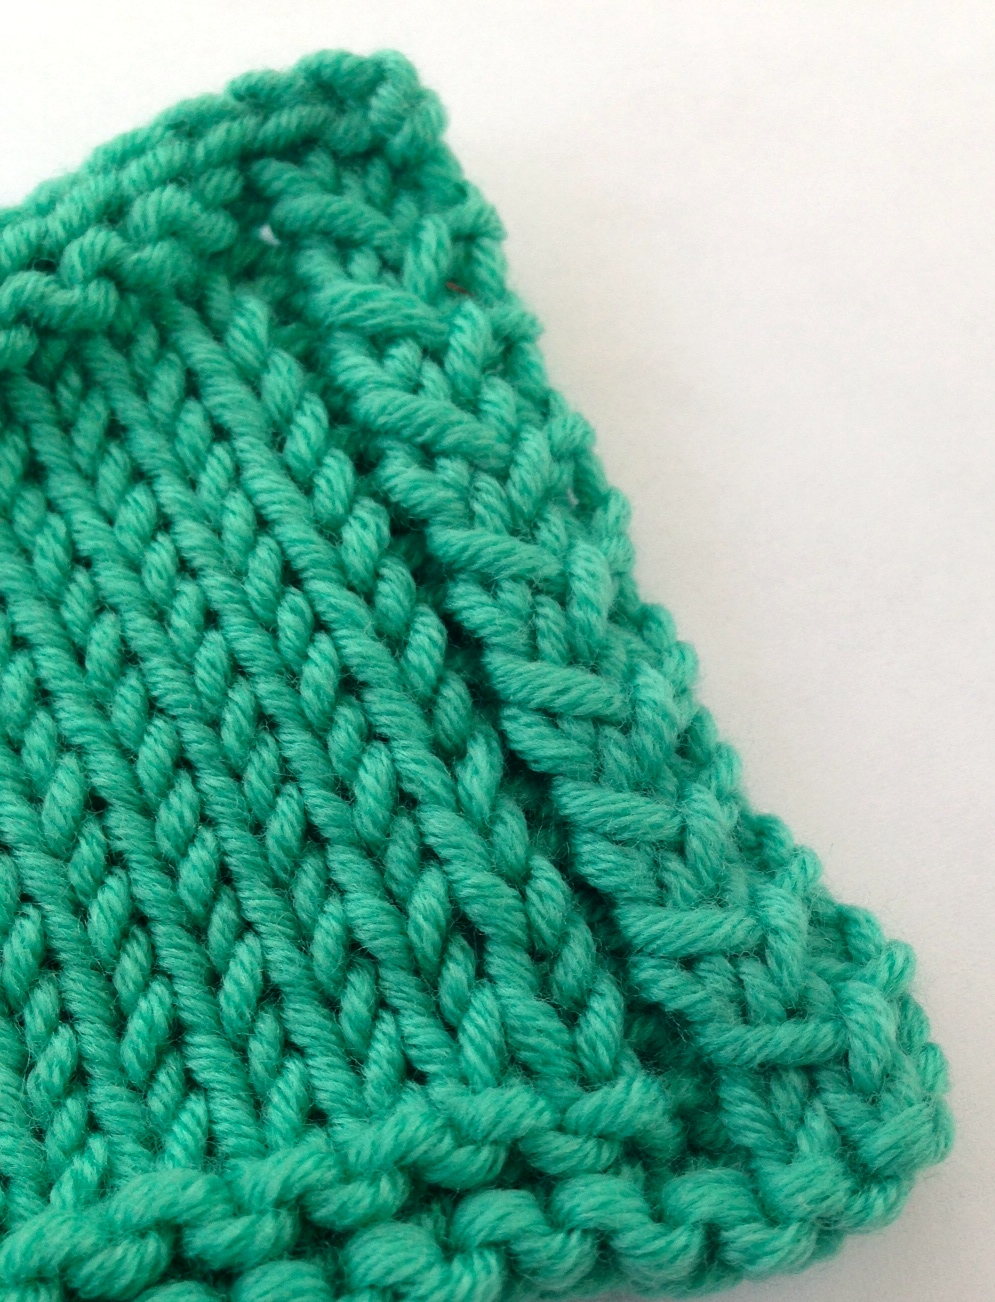 Knitting Edge Stitch Patterns : These stitches will instantly improve your knit edges